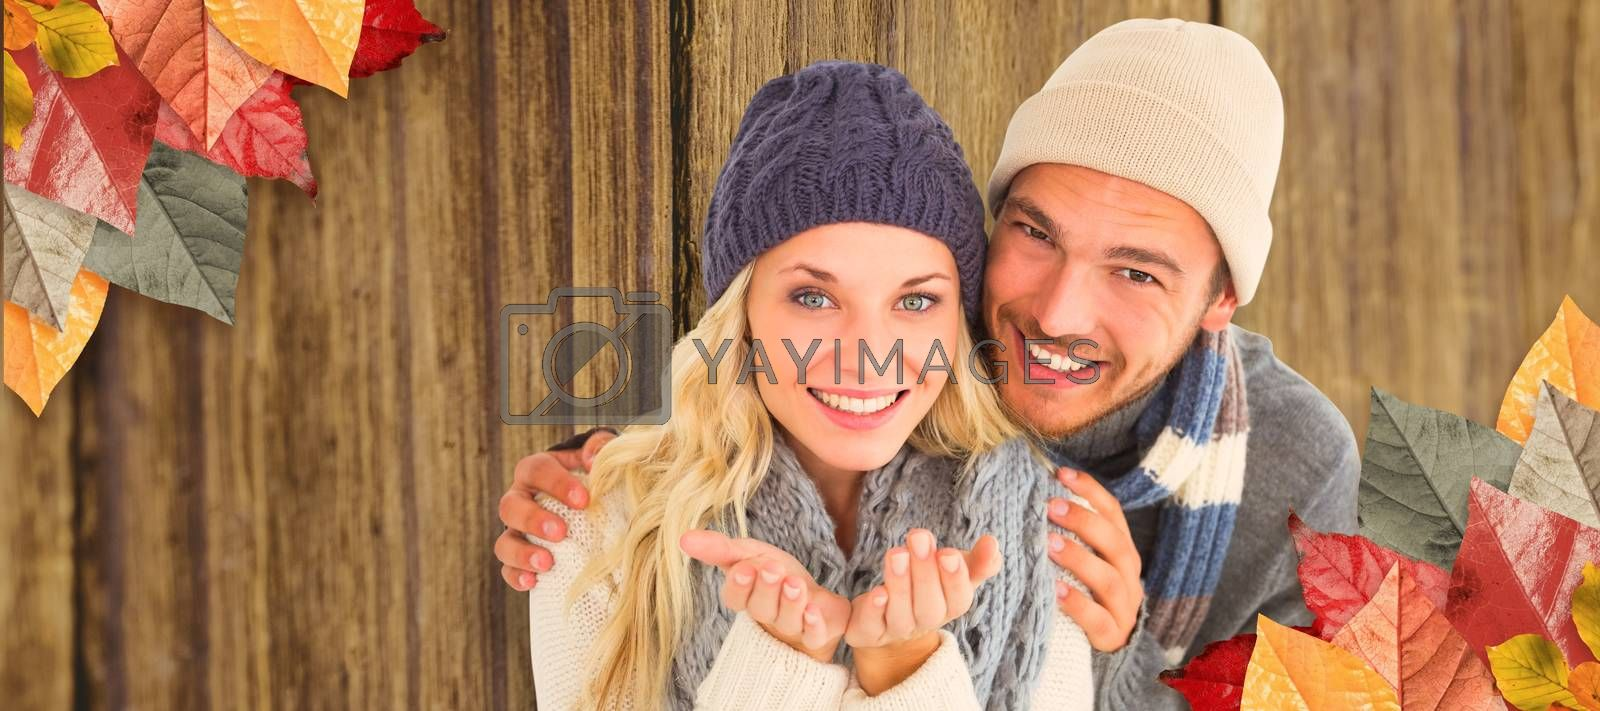 Attractive couple in winter fashion smiling at camera against close-up of wooden plank